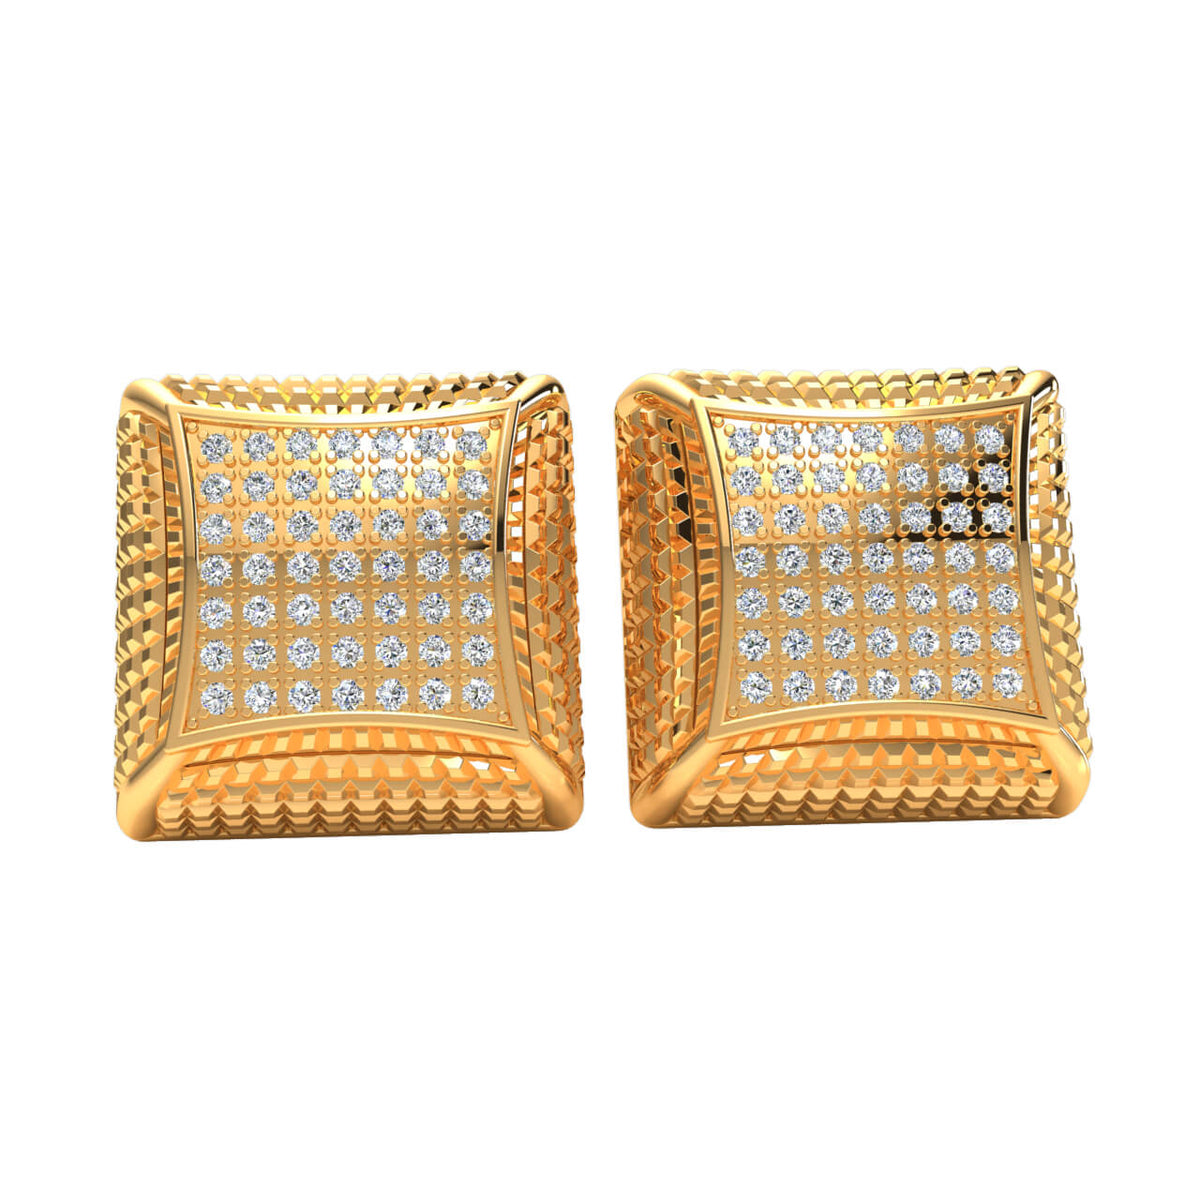 0.45 Ct Round GH SI2 Diamond Box Square Cluster Unisex Stud Earrings 14k Gold